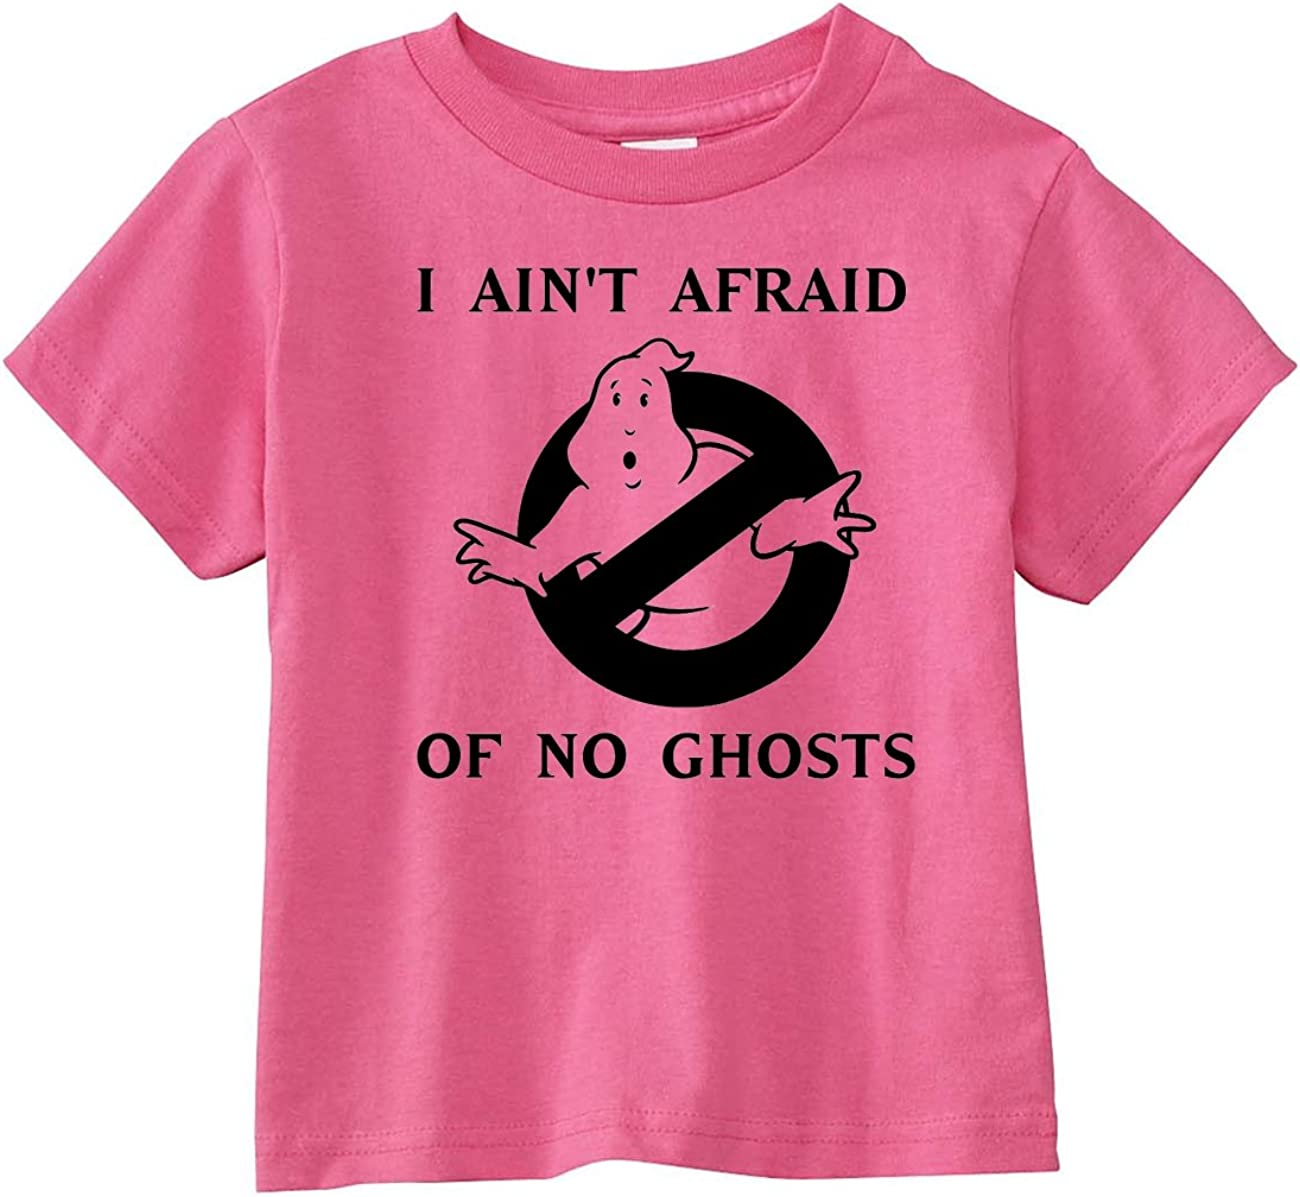 Ghostbusters Toddler I Ain't Afraid of No Ghosts T-Shirt